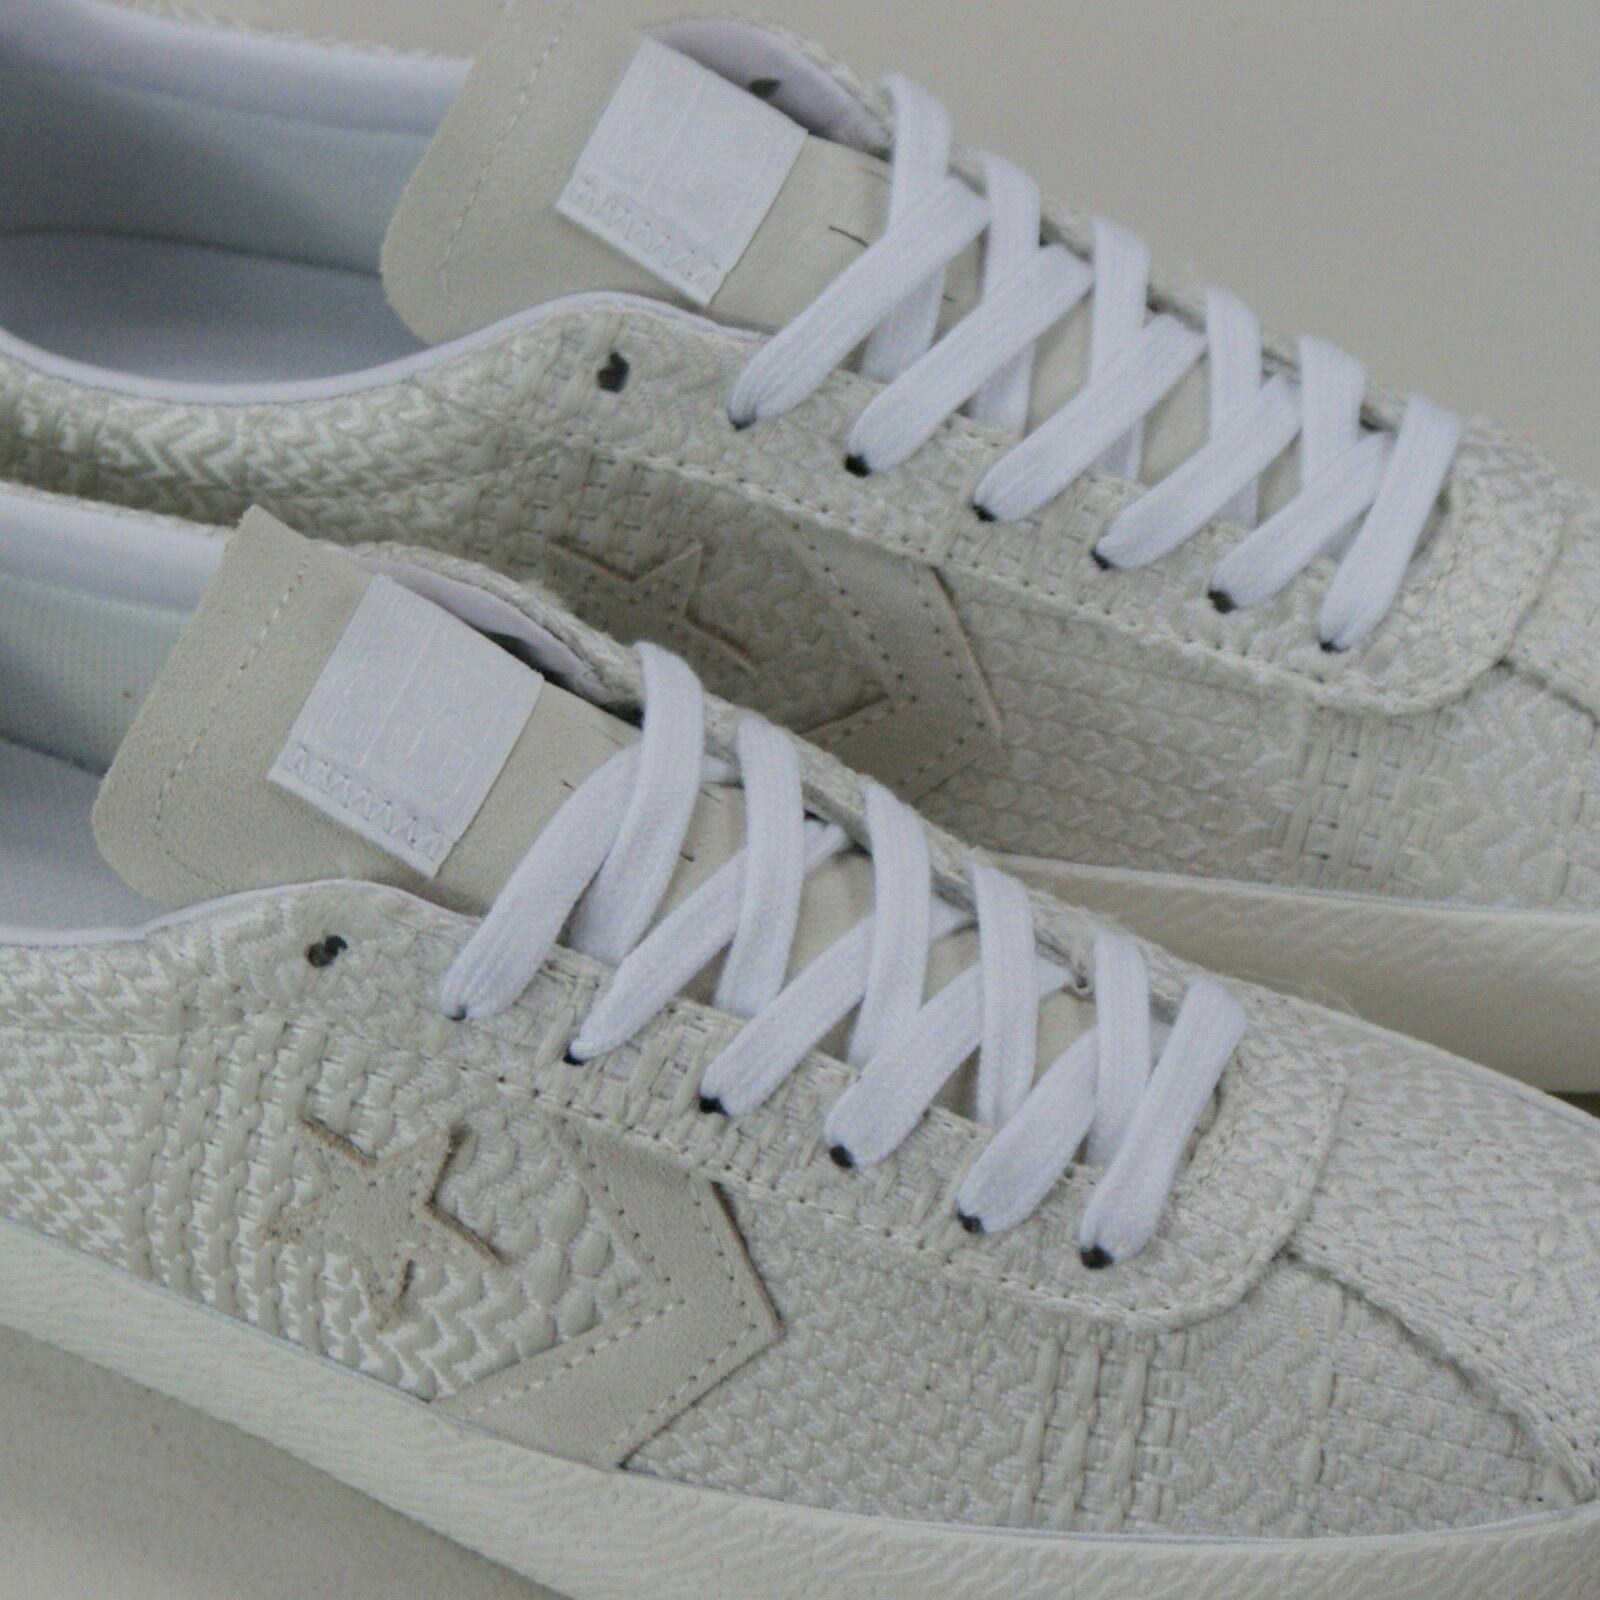 Converse  Breakpoint Ox Woven Trainers  Converse New in box UK Größe 7,8,9,10,11 3ff785